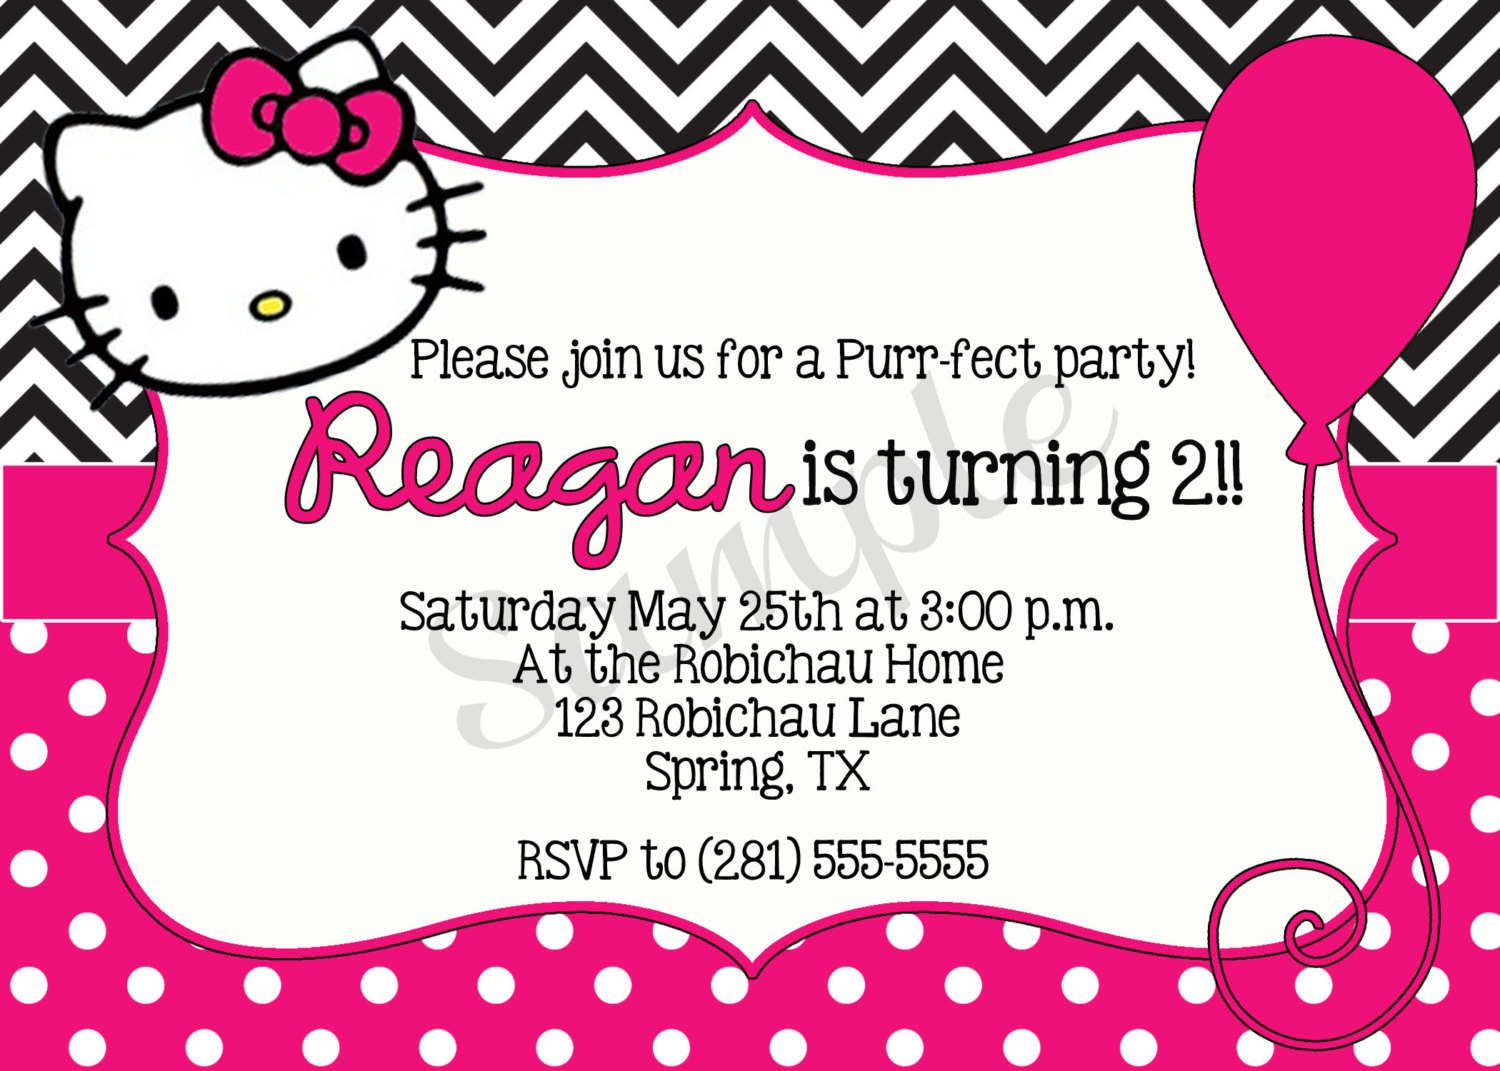 ... invitation card template, hello kitty invitation card free template